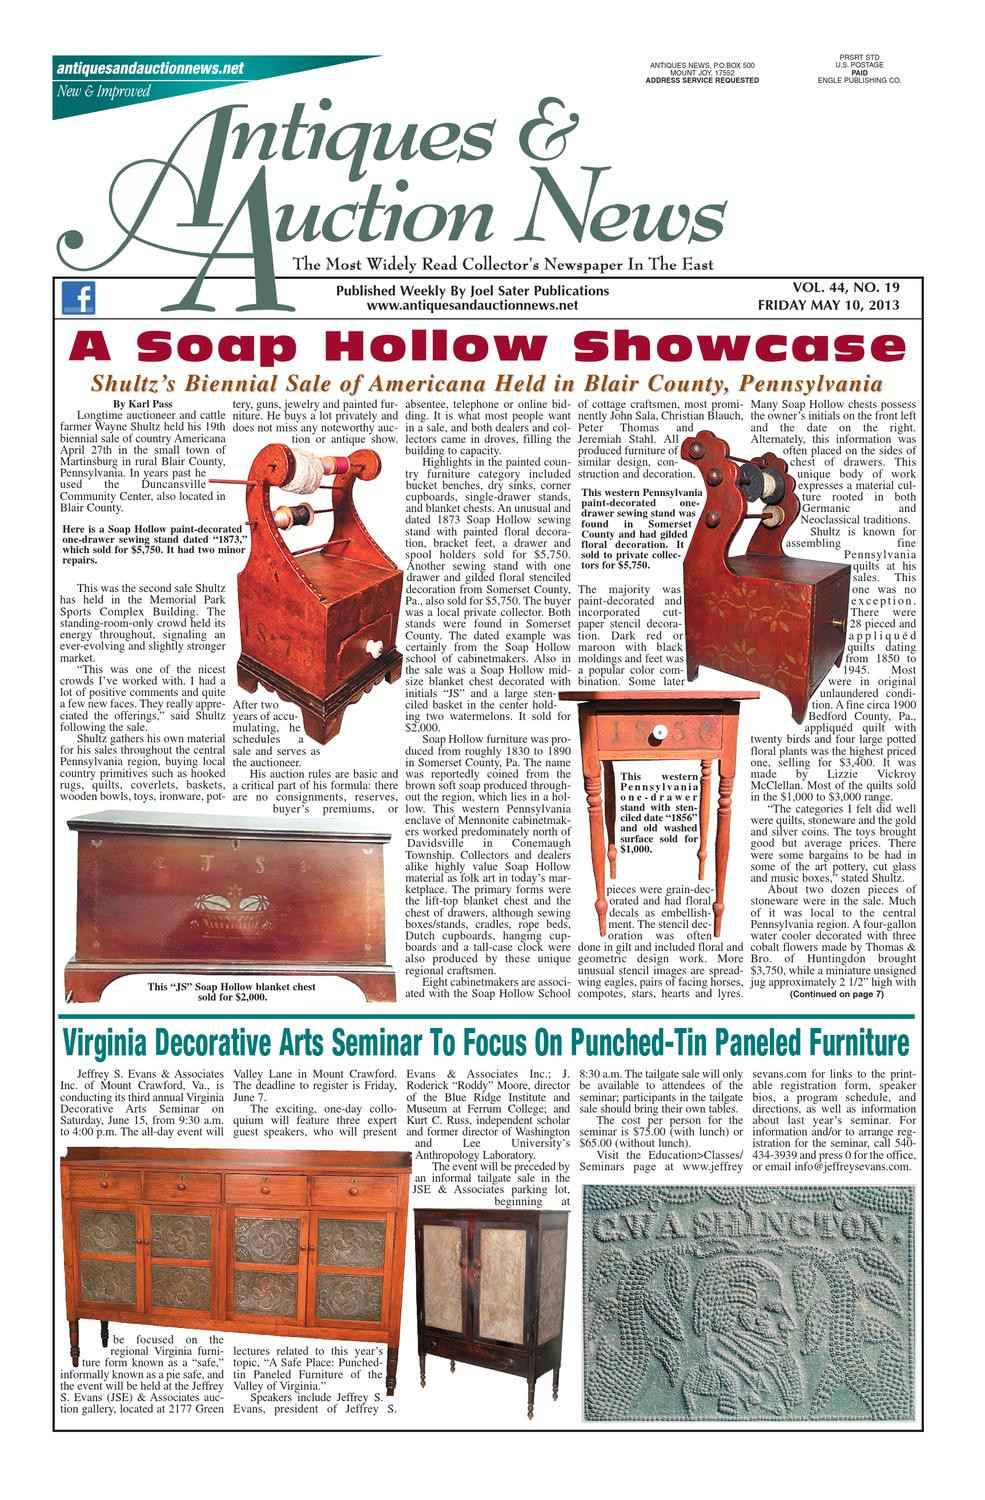 ornate vases for sale of antiques auction news 051013 by antiques auction news issuu inside page 1